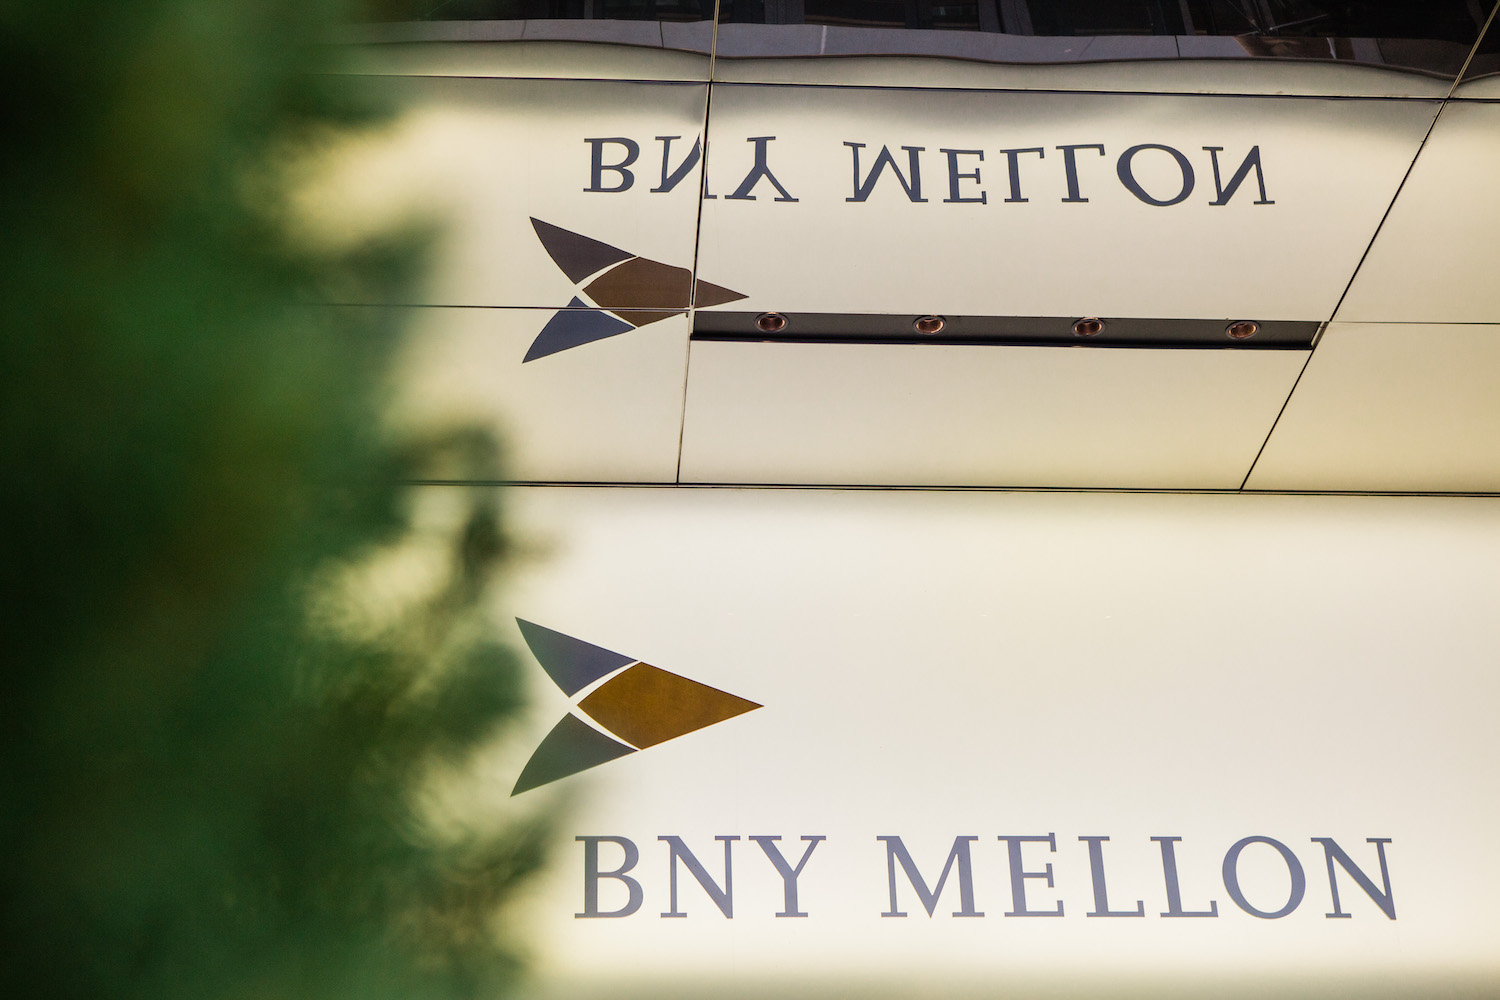 BNY Mellon to Provide Grayscale With ETF Services After 'Anticipated' GBTC Conversion